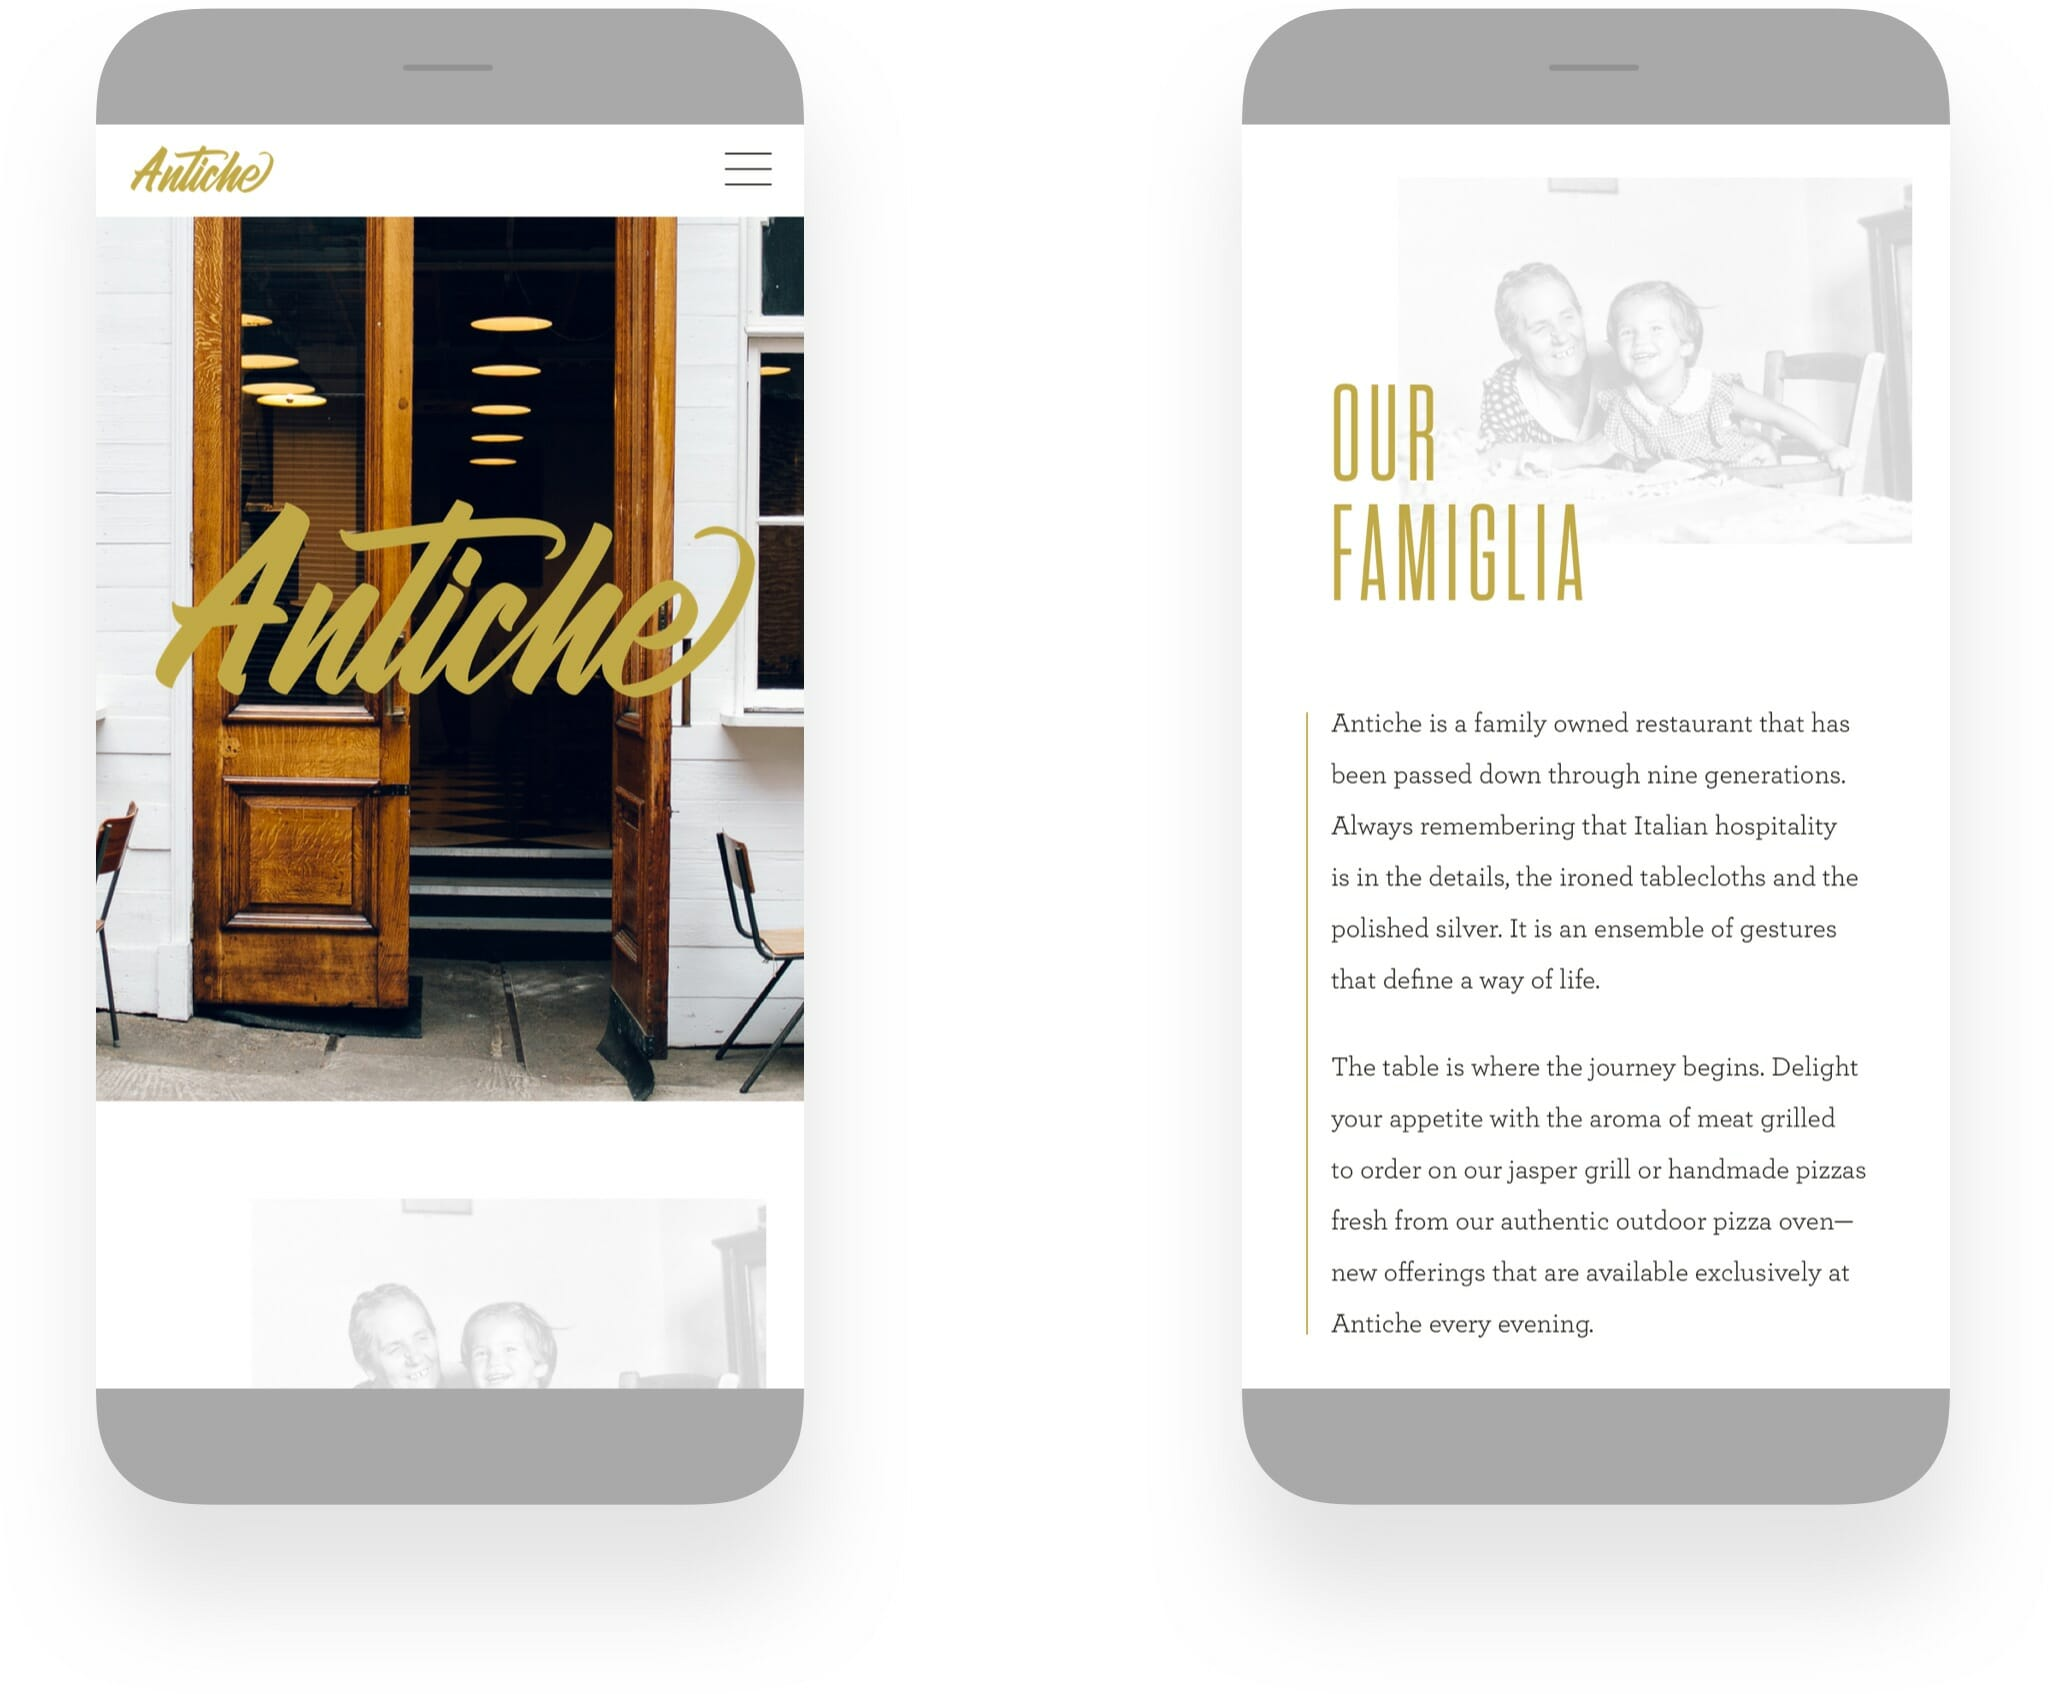 Antiche Restaurant Mobile Responsive Web Design by Mark Lundberg